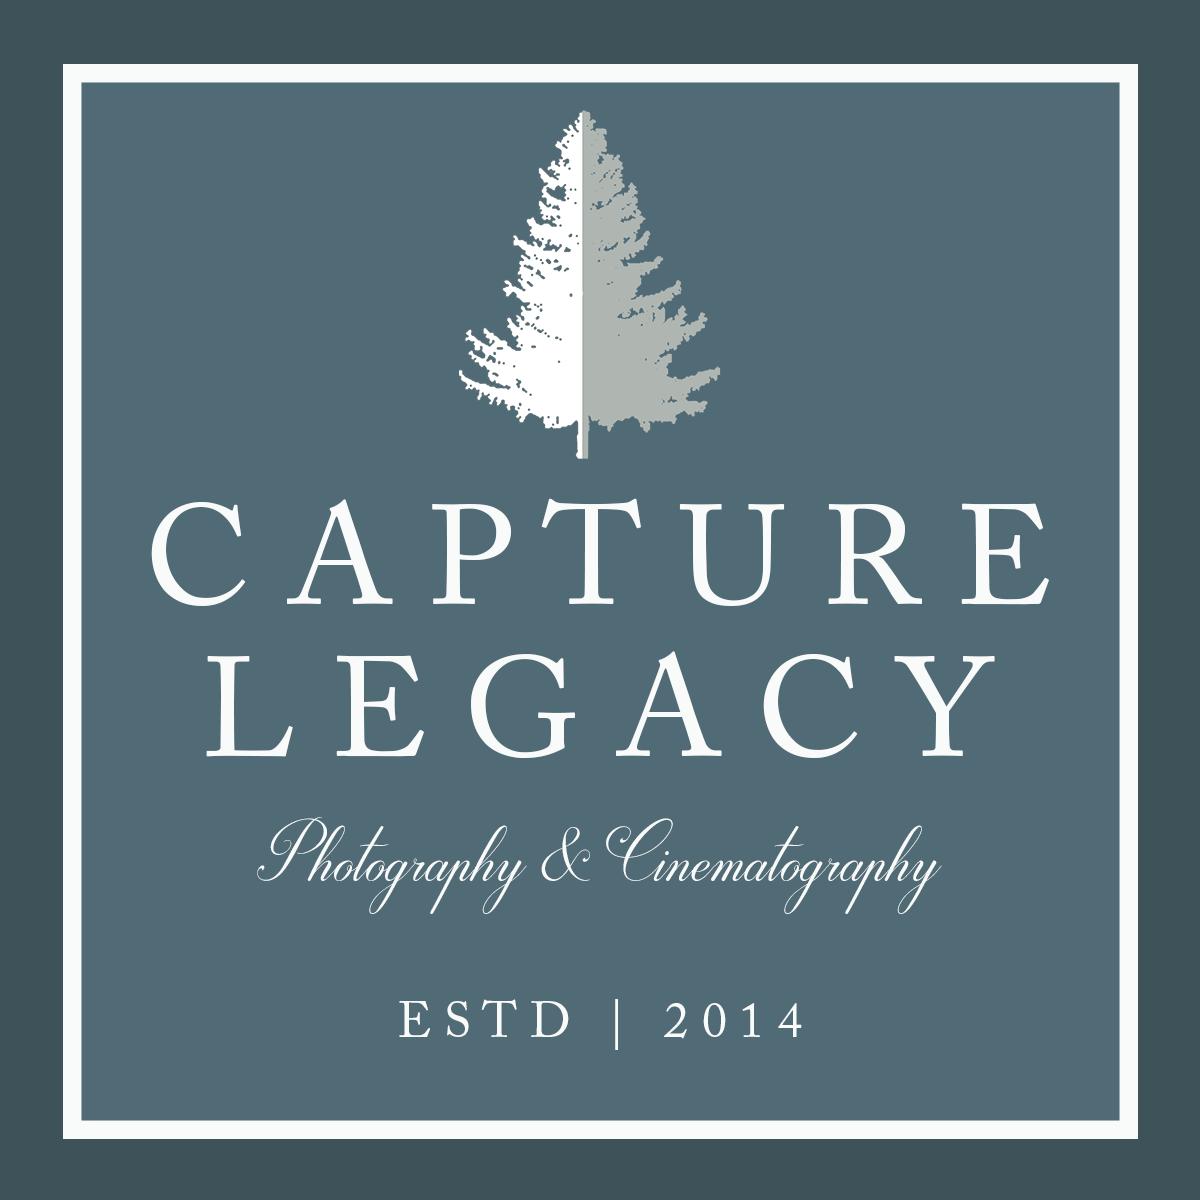 Capture Legacy Photography & Cinematography